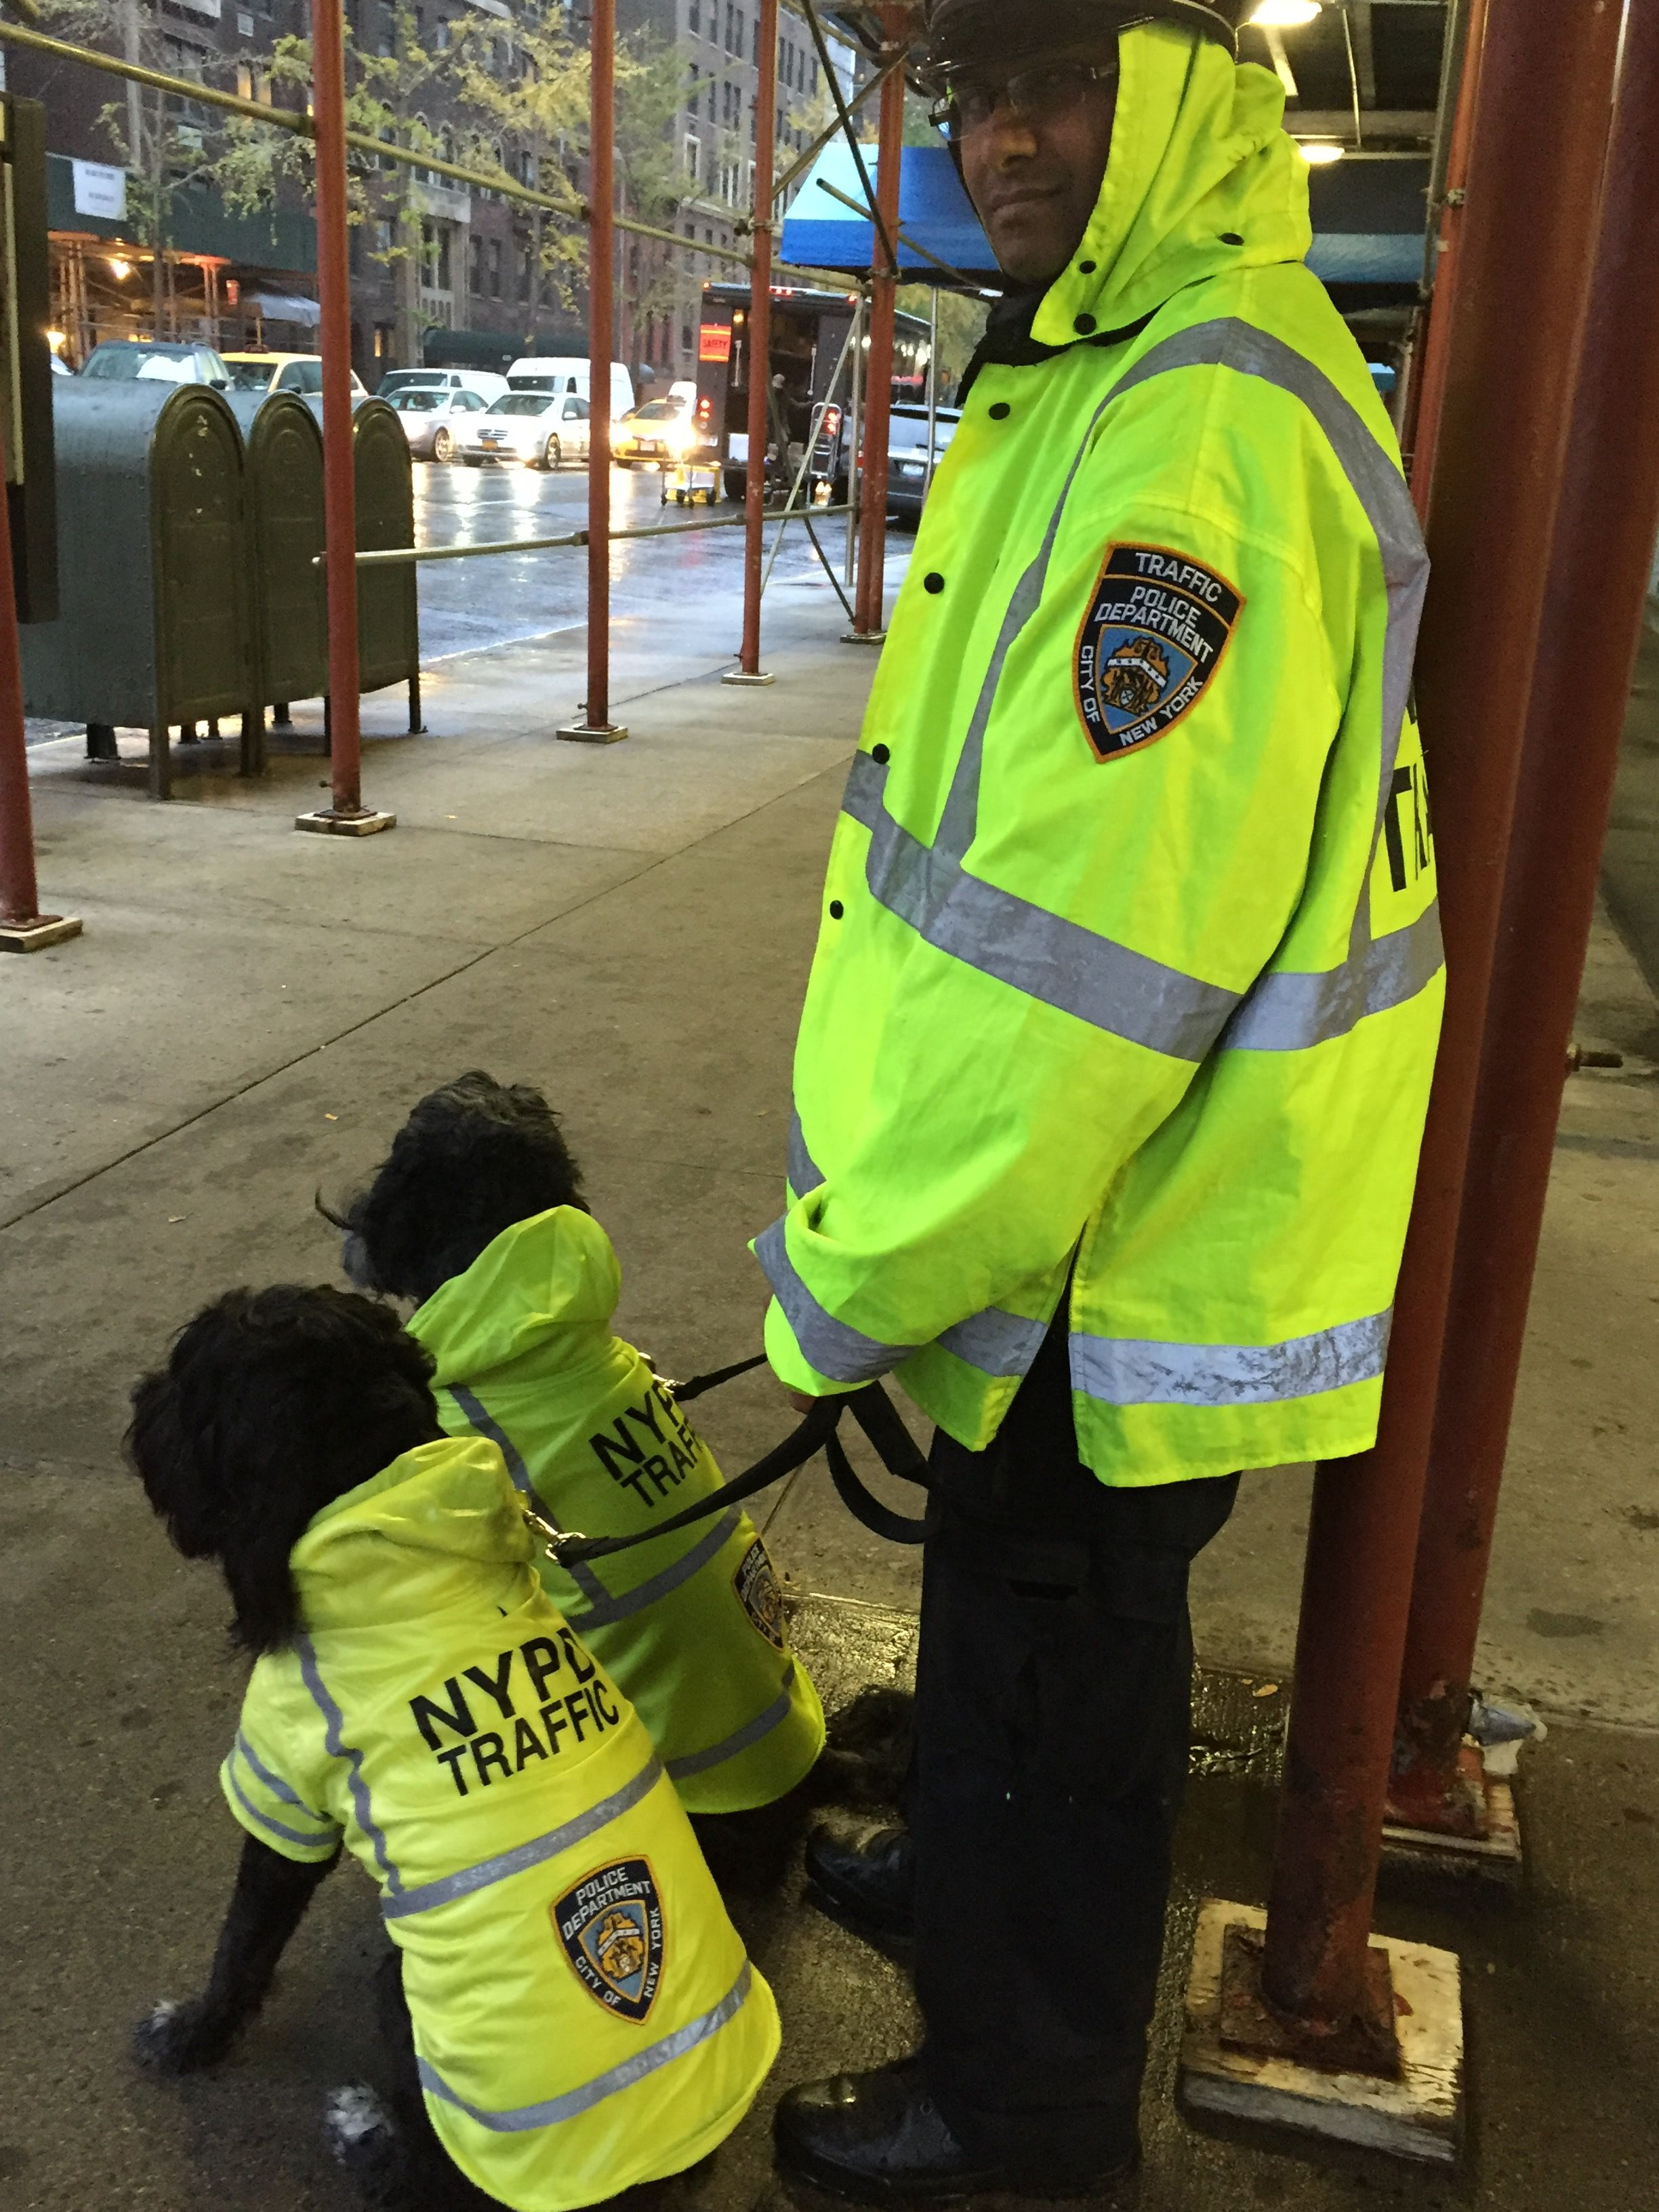 Nypd Traffic Coat Royalanimals Com Nypd Coats Dogs Winter Jackets Osprey Backpack Nypd [ 3264 x 2448 Pixel ]